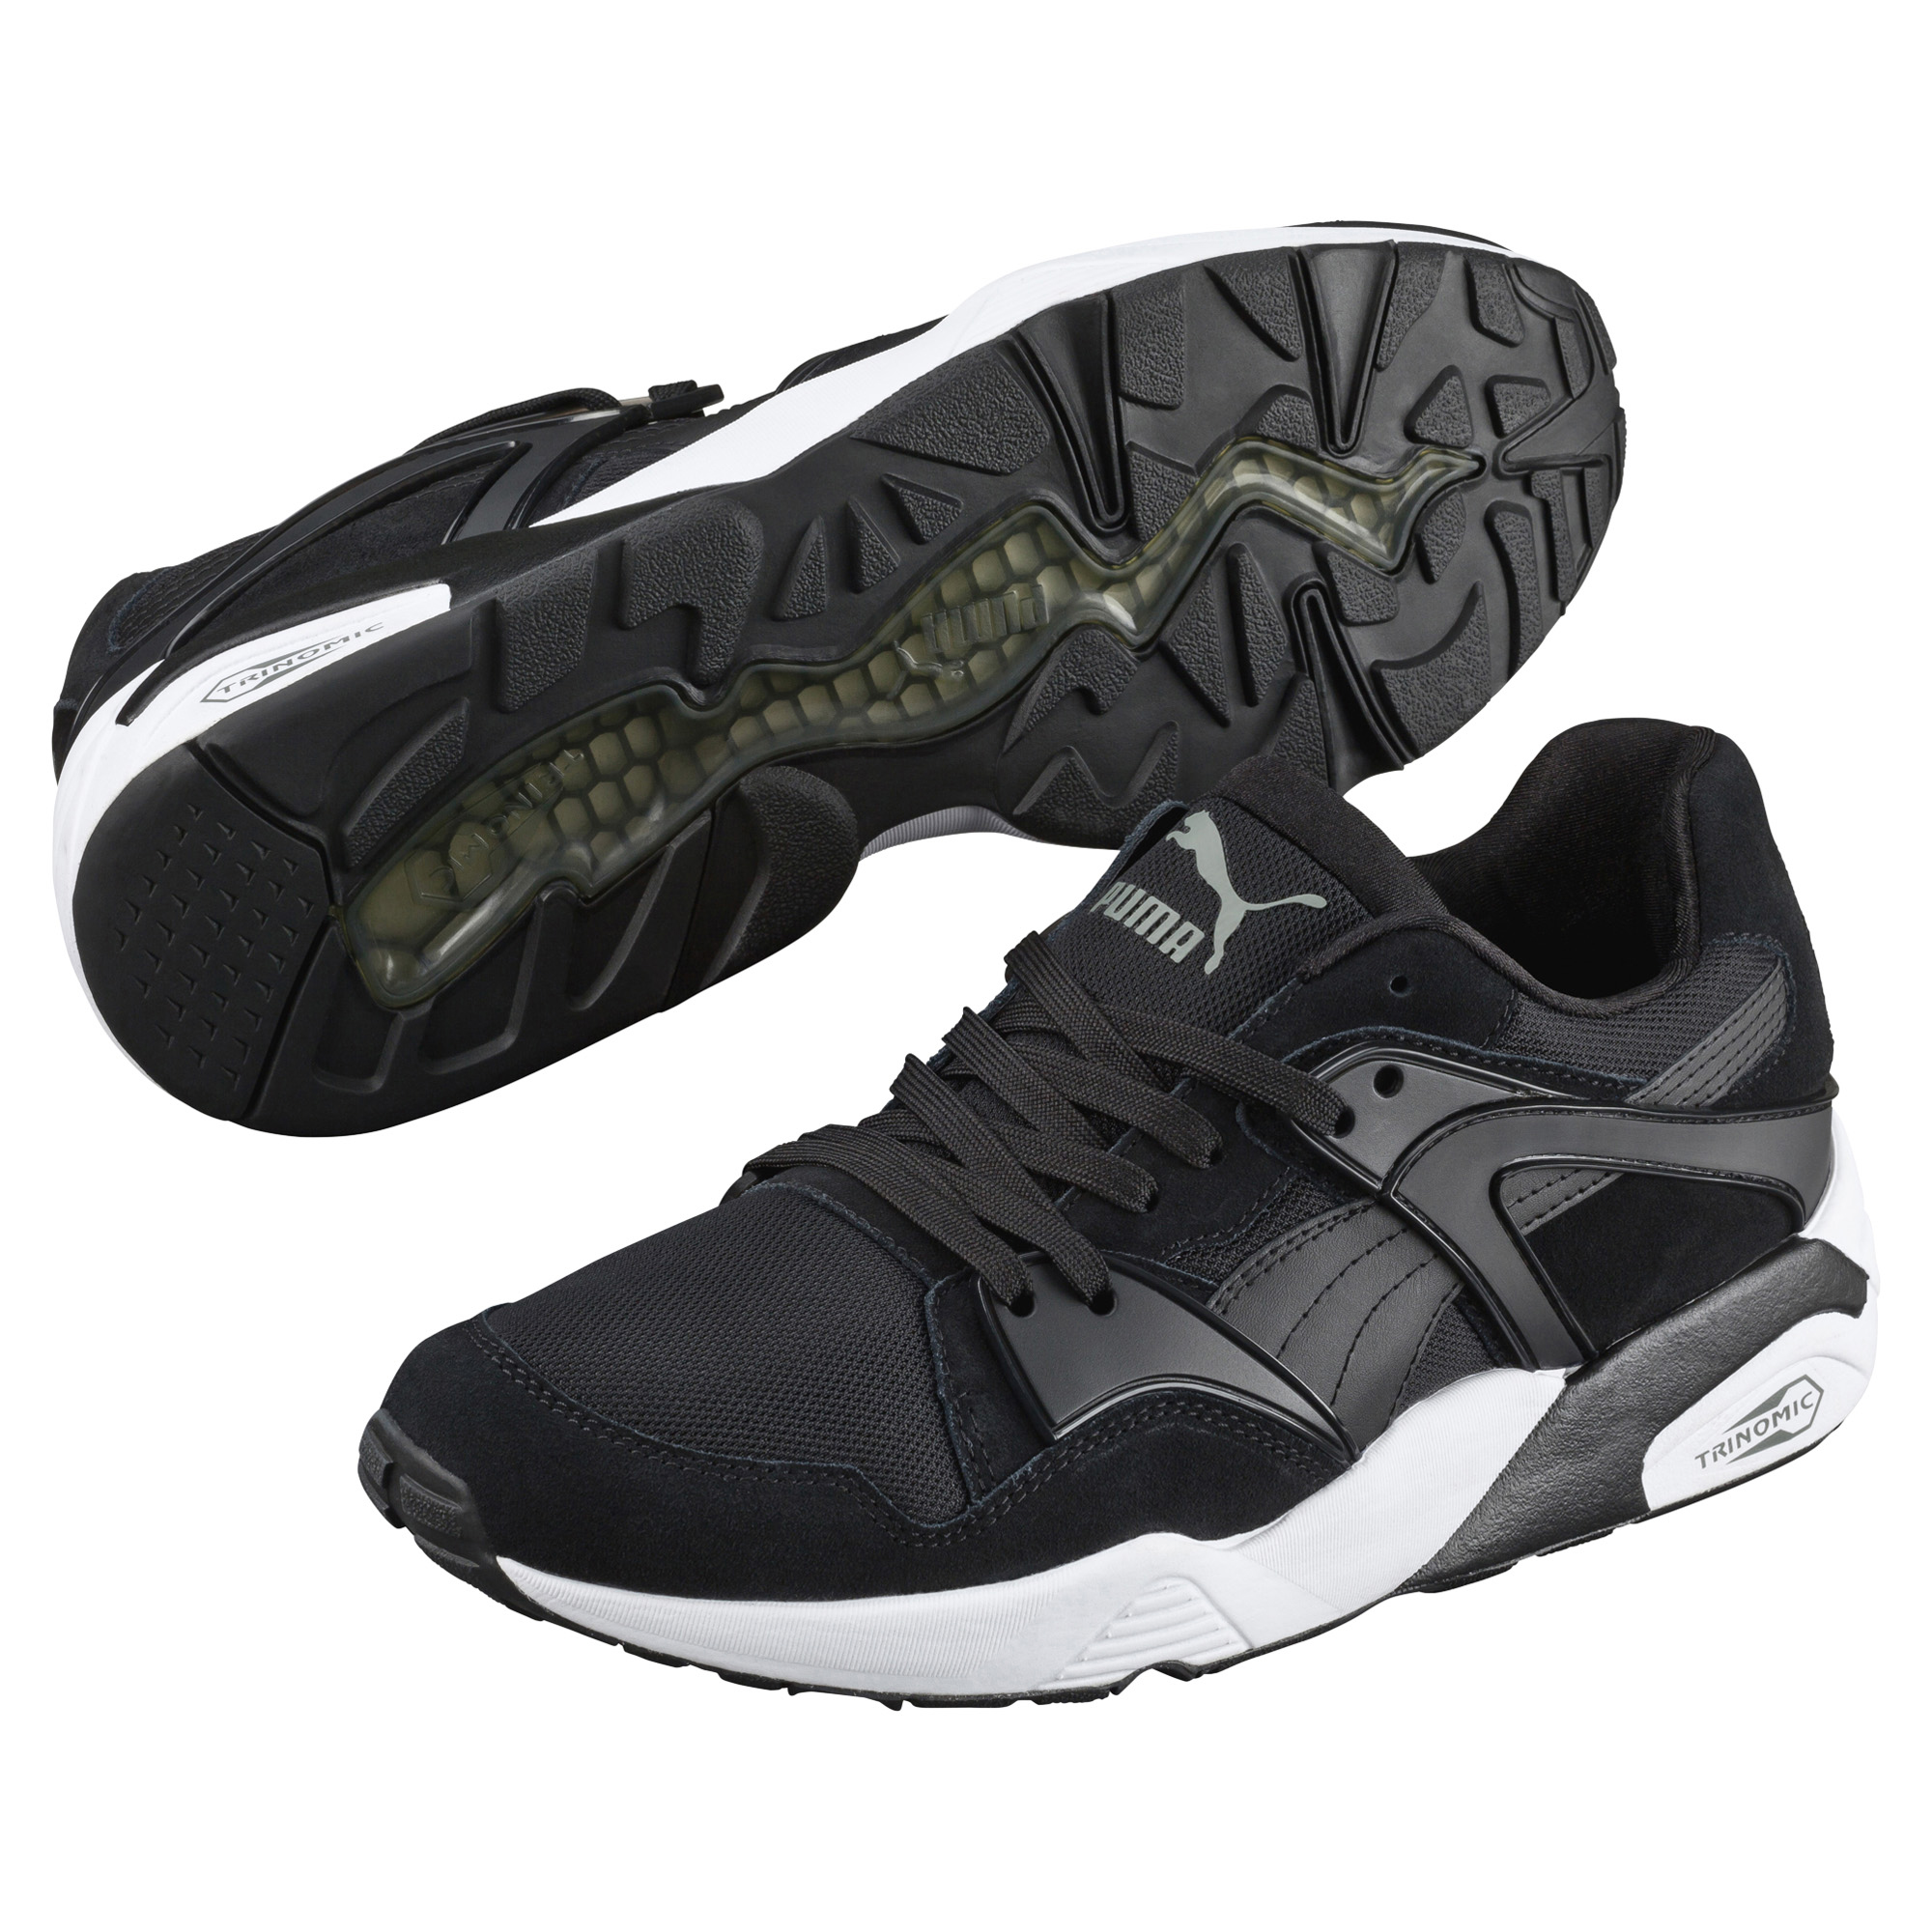 meilleure sélection a32e3 ff33e The New, Re-Imagined Puma Blaze Is The Future Icon ...